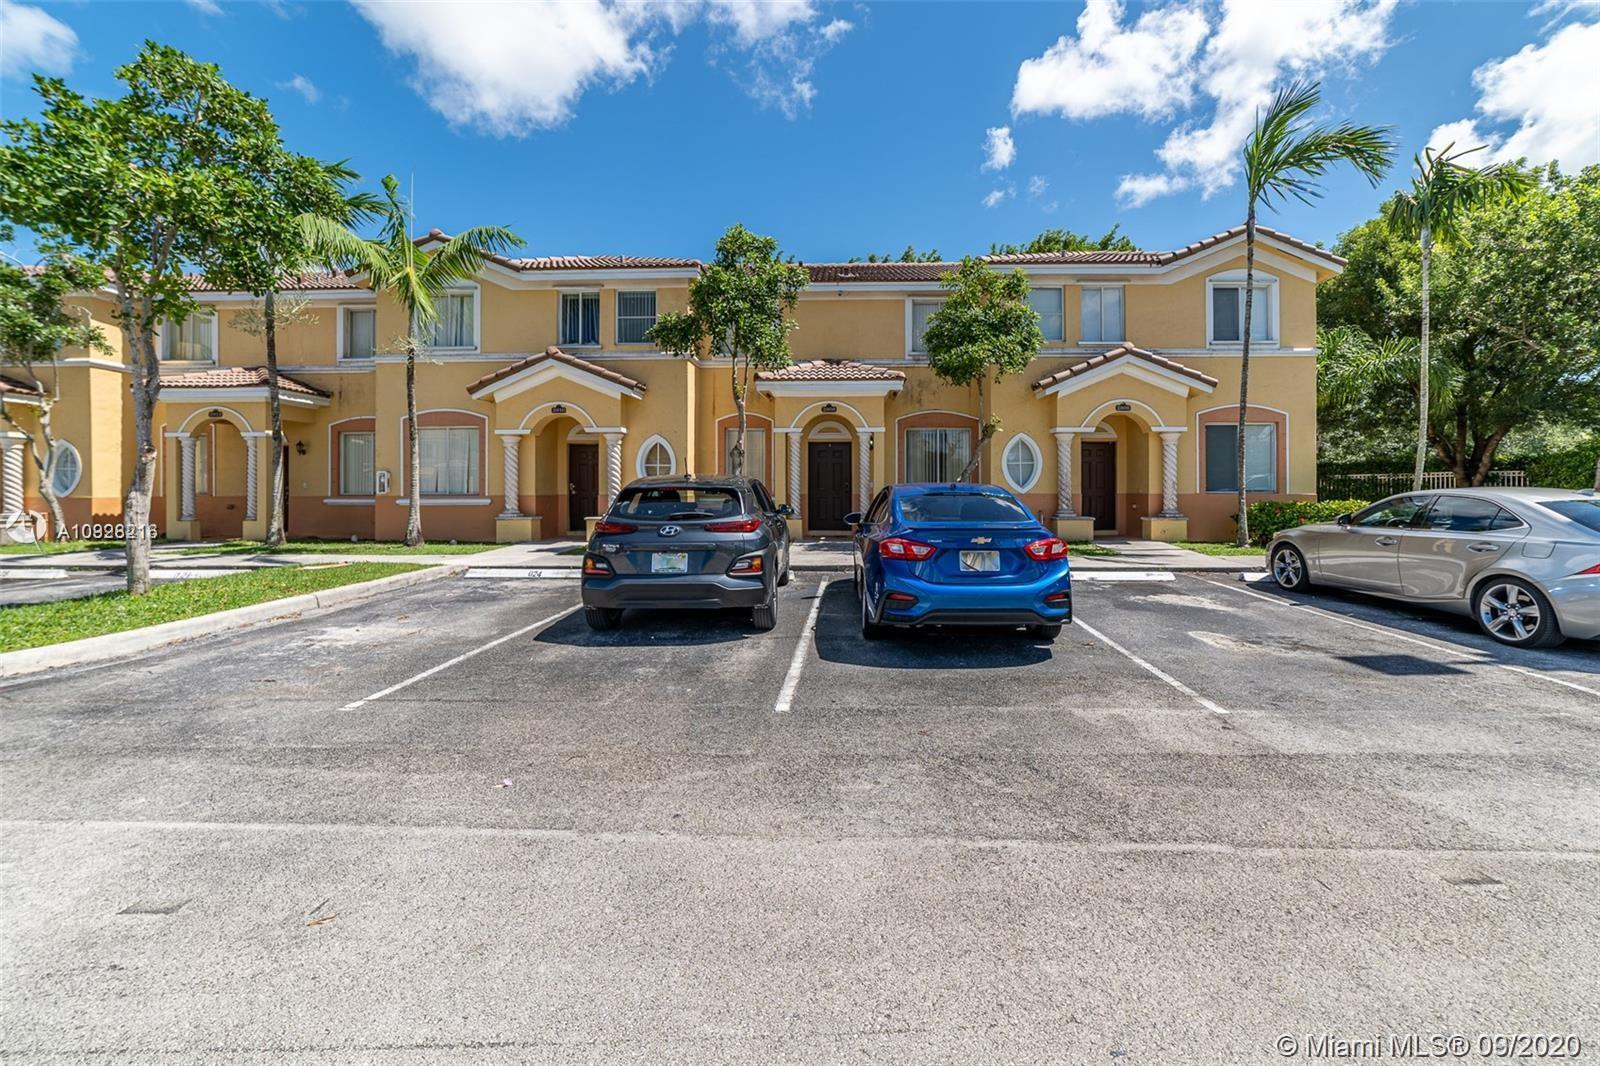 Beautiful update Town home condo 3 Bedrooms 2.5 Baths with tile throughout in 1st floor and wood floor up stair, Updated kitchen with granite countertop and stainless-steel appliances, Crown molding upgrade bathrooms, outdoor kitchen in a covered patio to enjoy. All security cameras stay 2 parking space and plenty of guest parking. Easy access to turnpike, restaurants, and local amenities. Security guard at the gate.